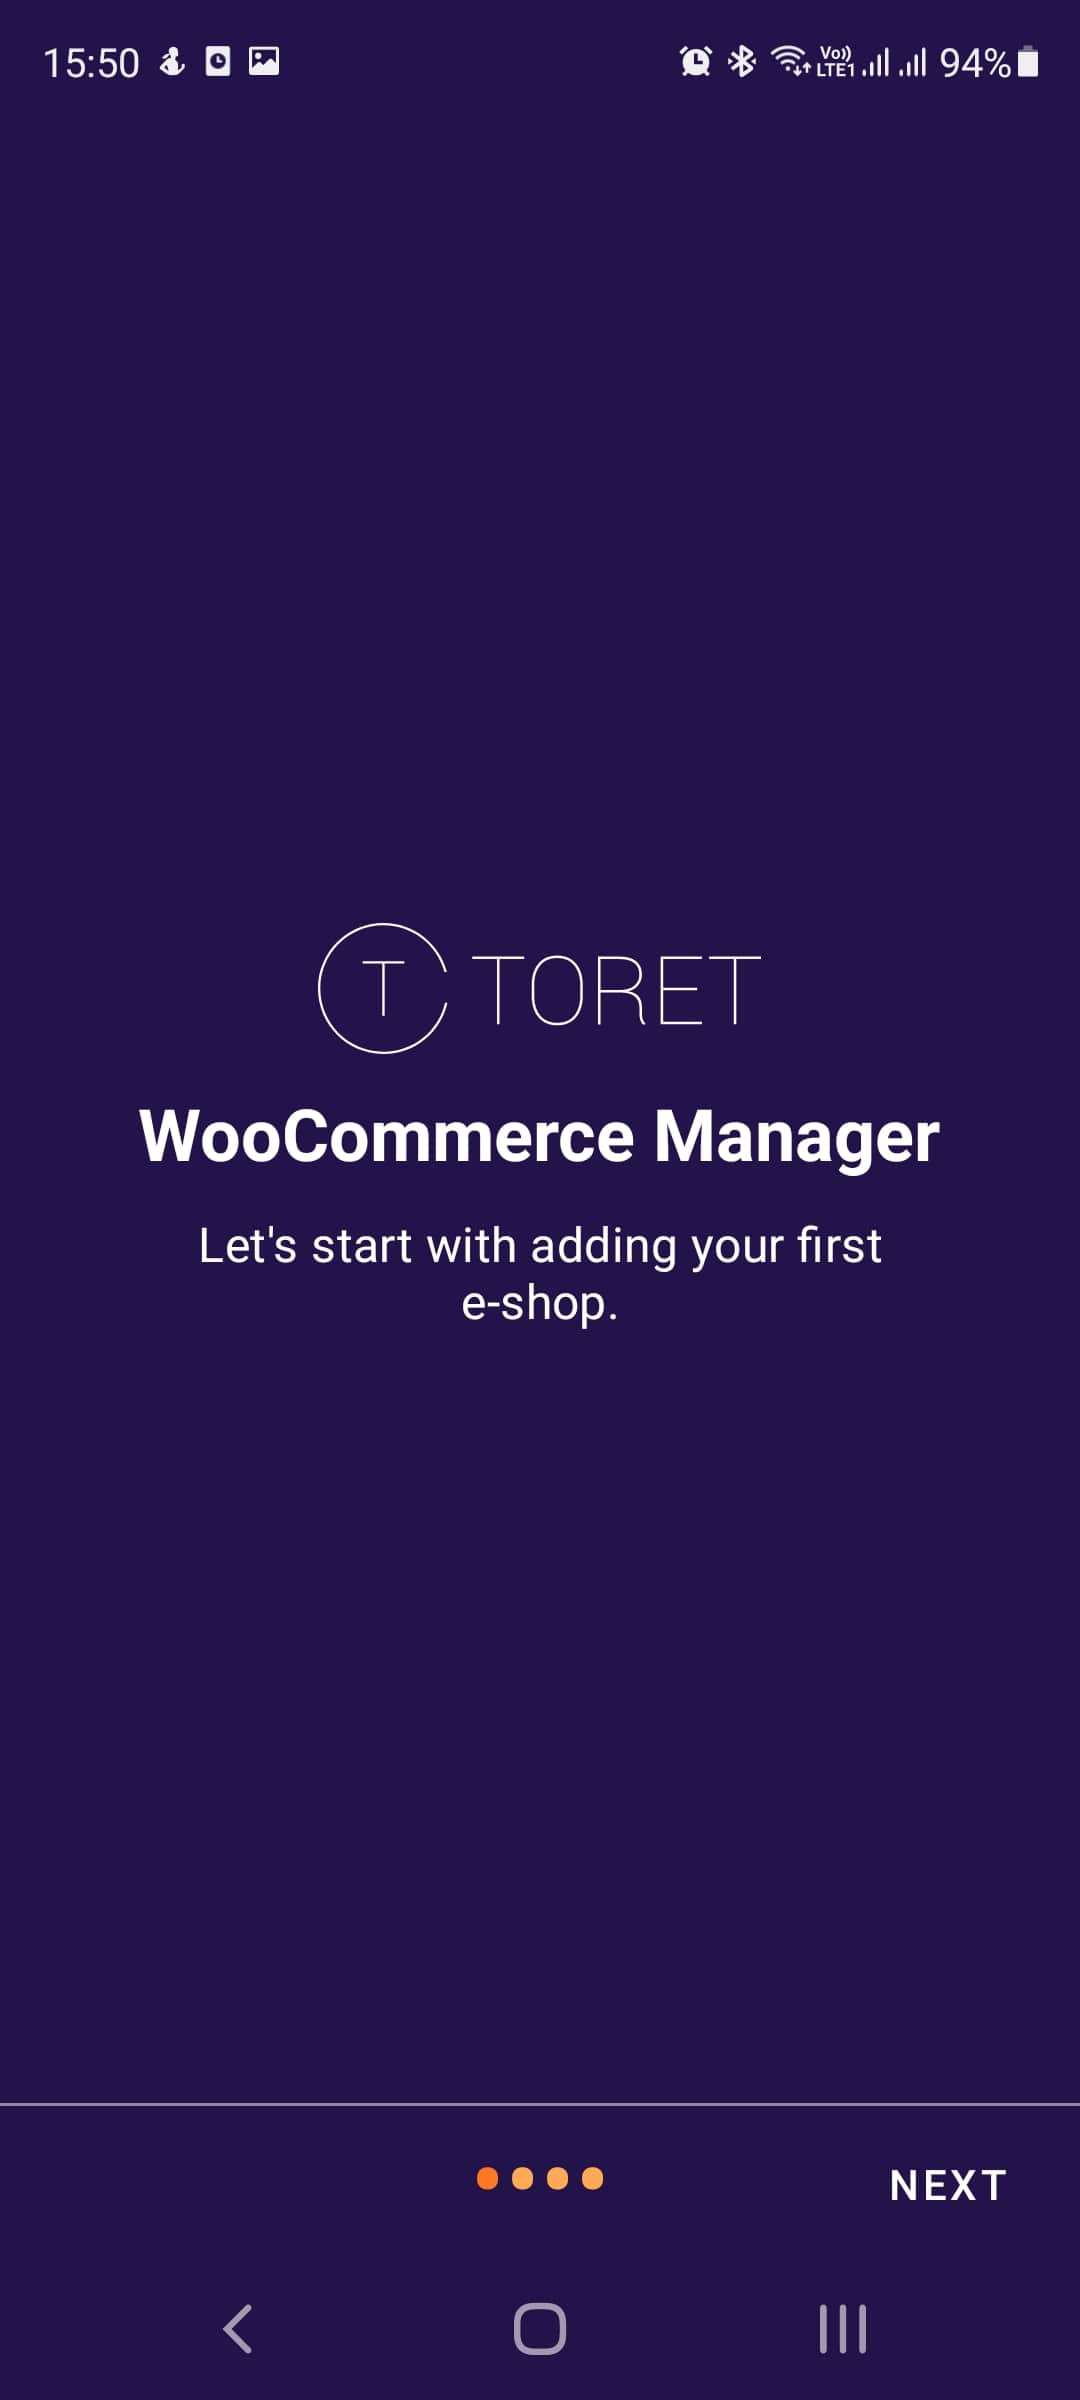 Toret WooCommerce Manager - Instroduction